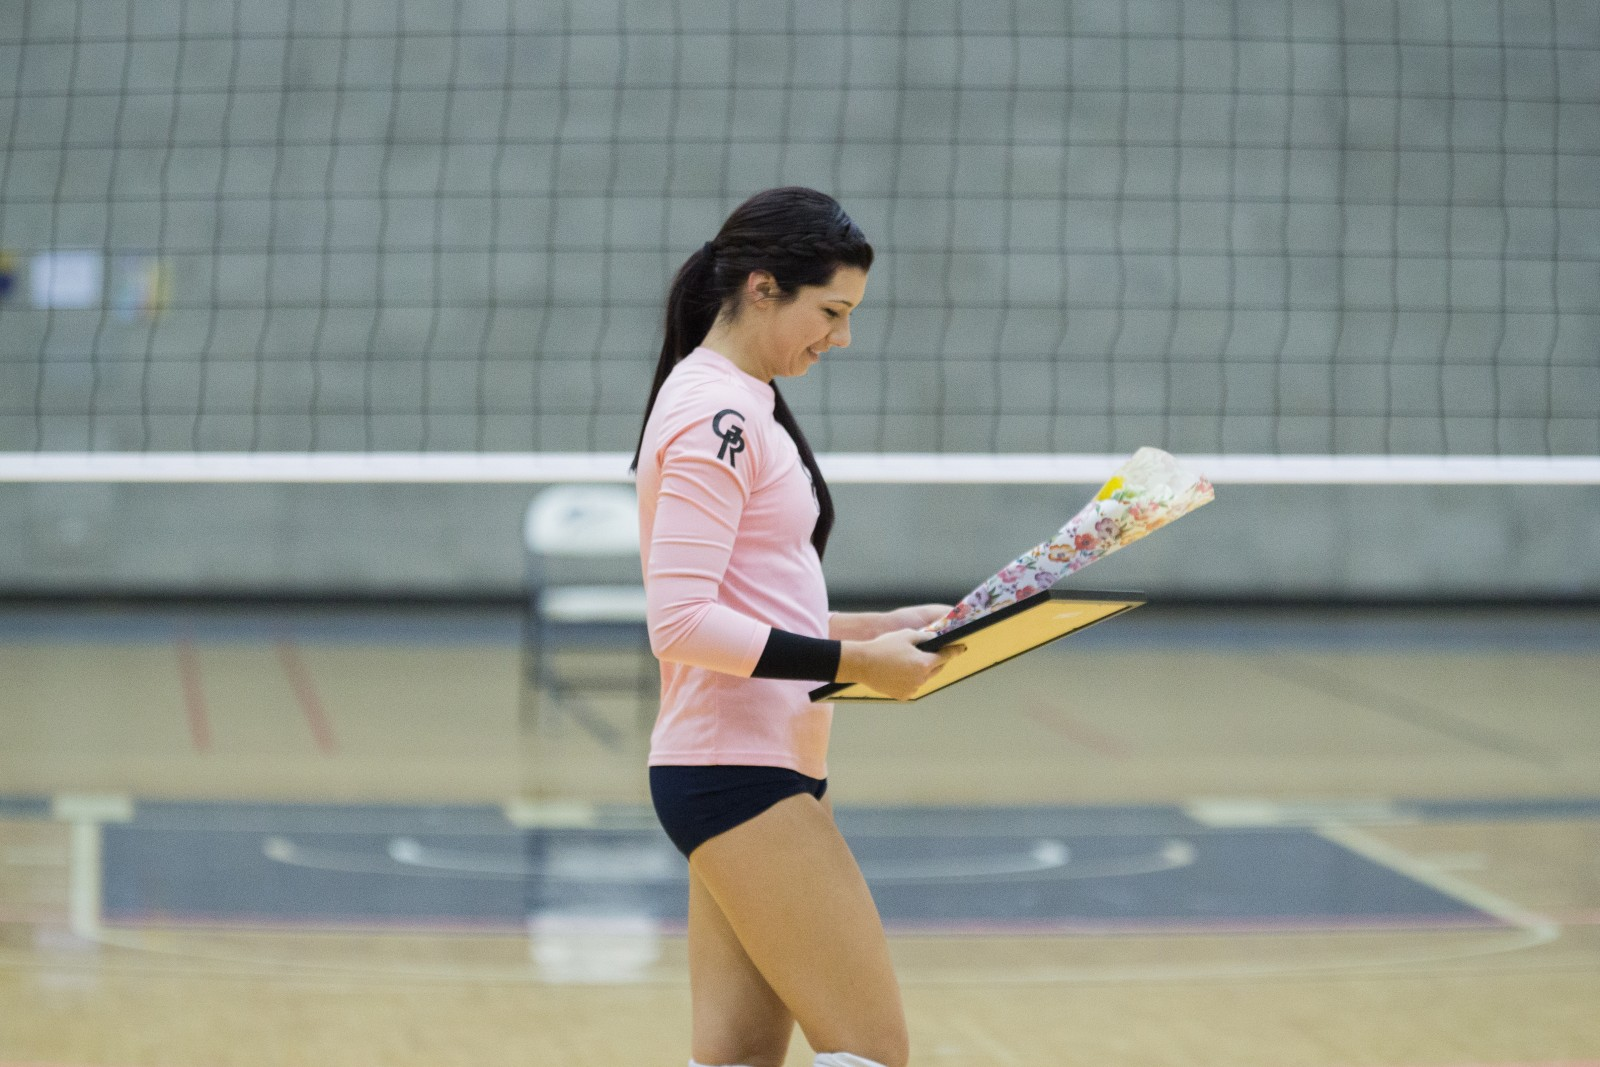 Sophomore Outside Hitter, #4, Lauren Wieber receiving GRCC's honoring of her mother, Shanon Wieber, after she passed away from breast cancer March 7, 2015